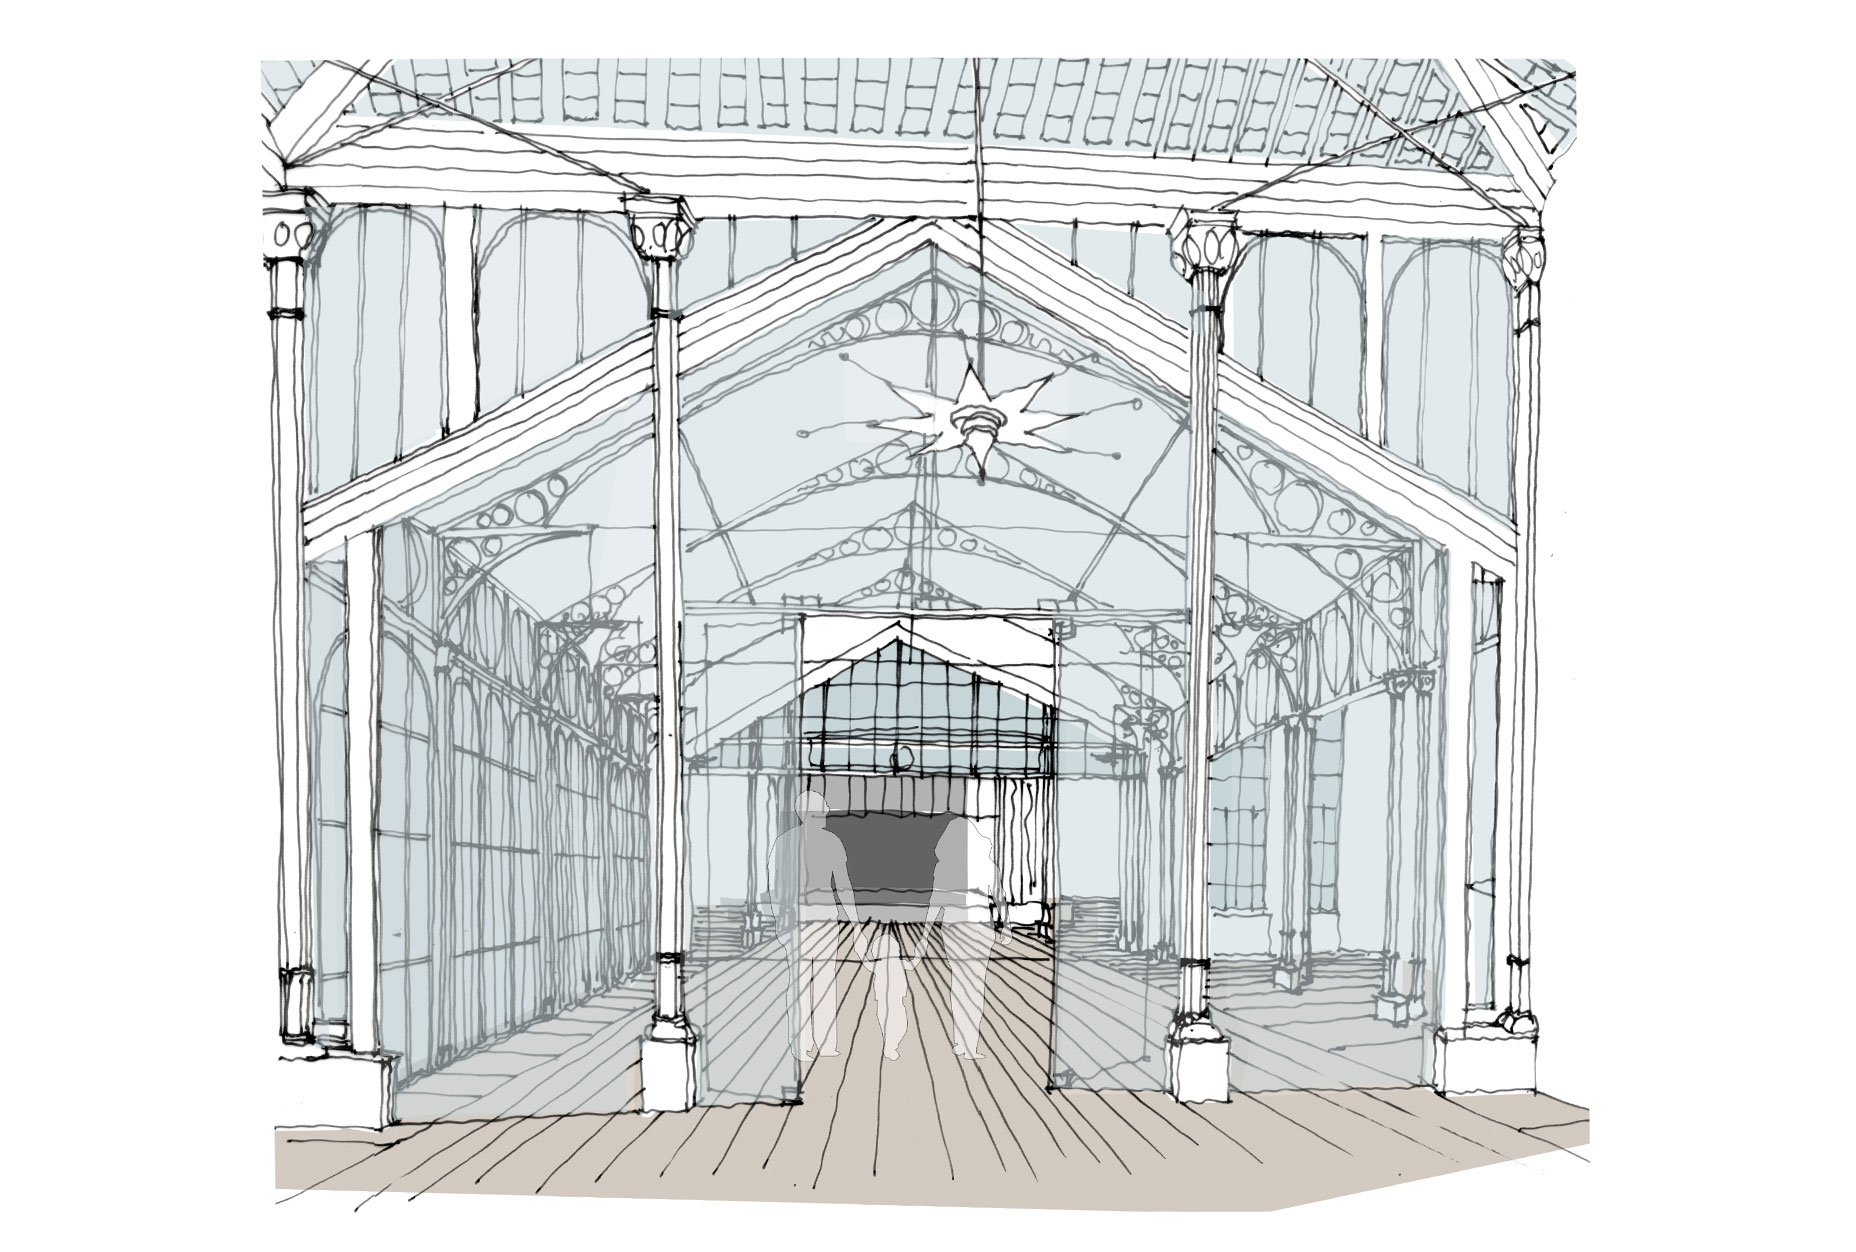 The Octagon - Pavilion Gardens - West Pavilion proposed drawings L14